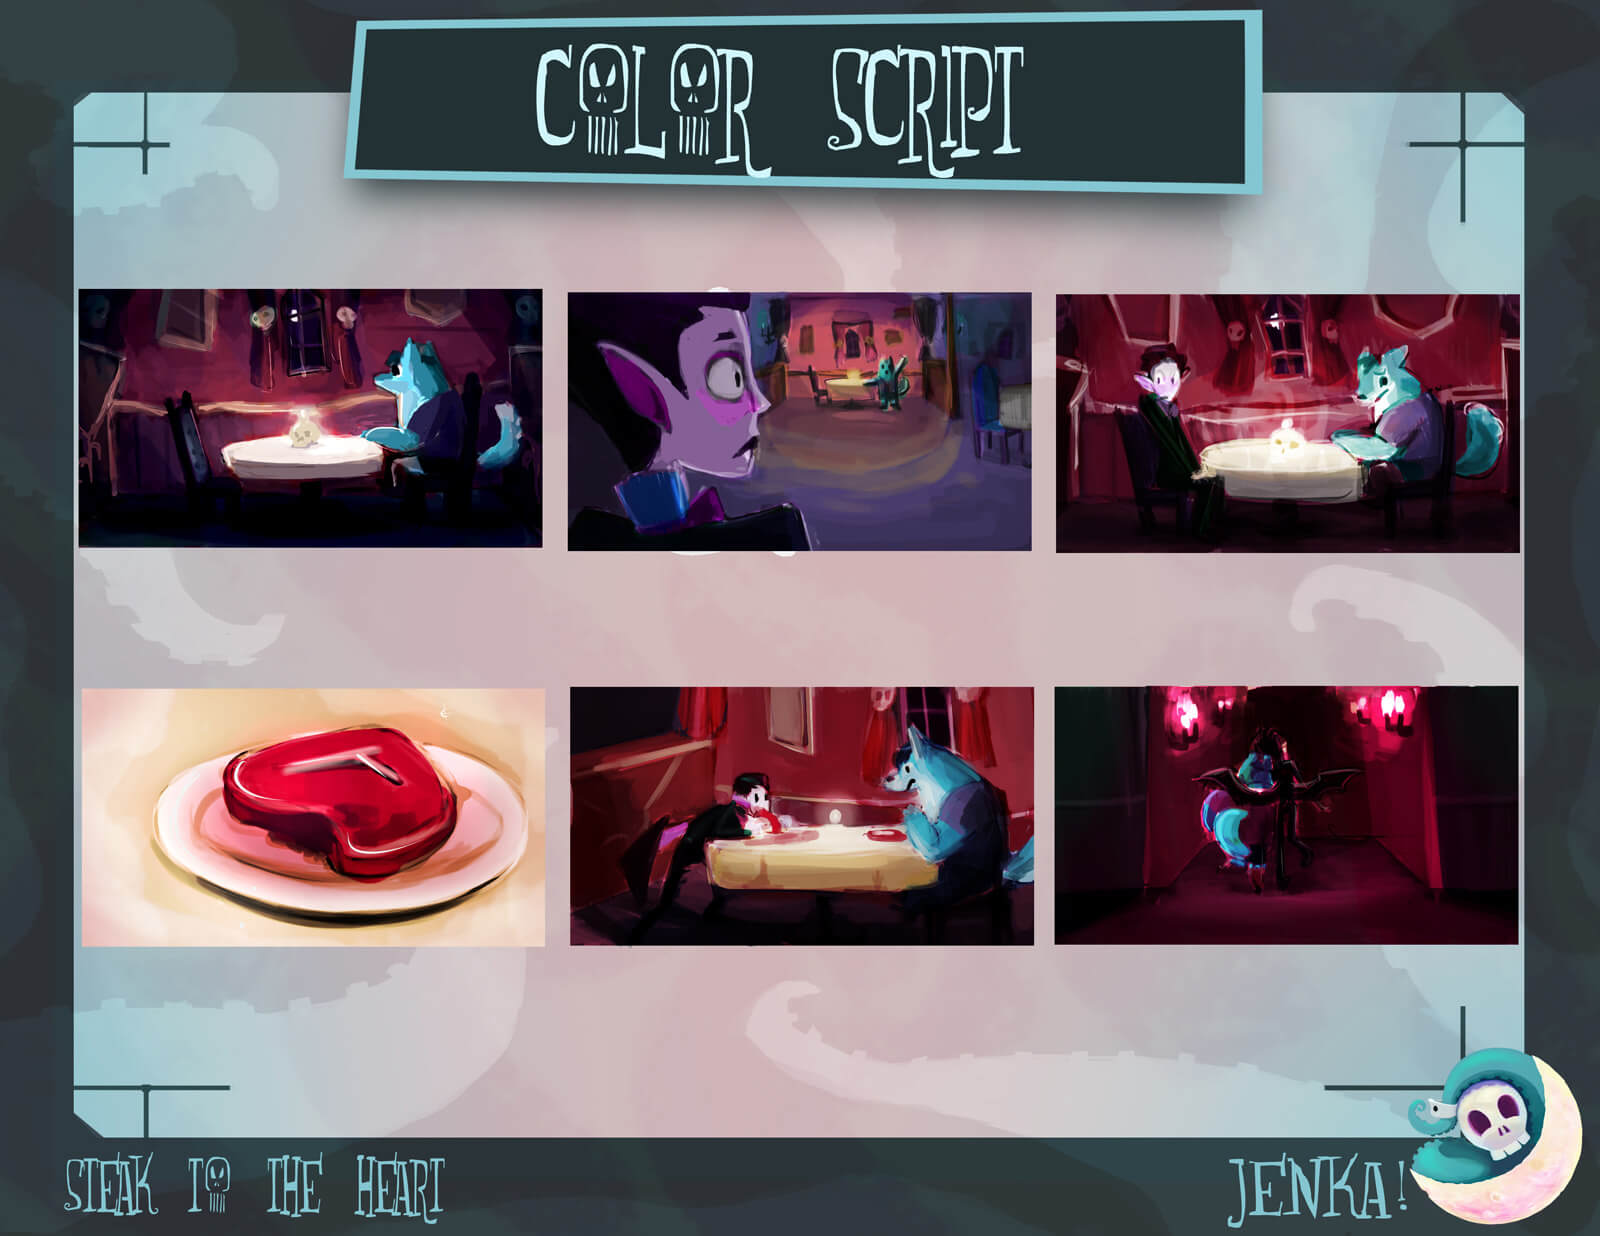 Color Script for the film Steak to the Heart, depicting the story in 6 frames, from beginning to end